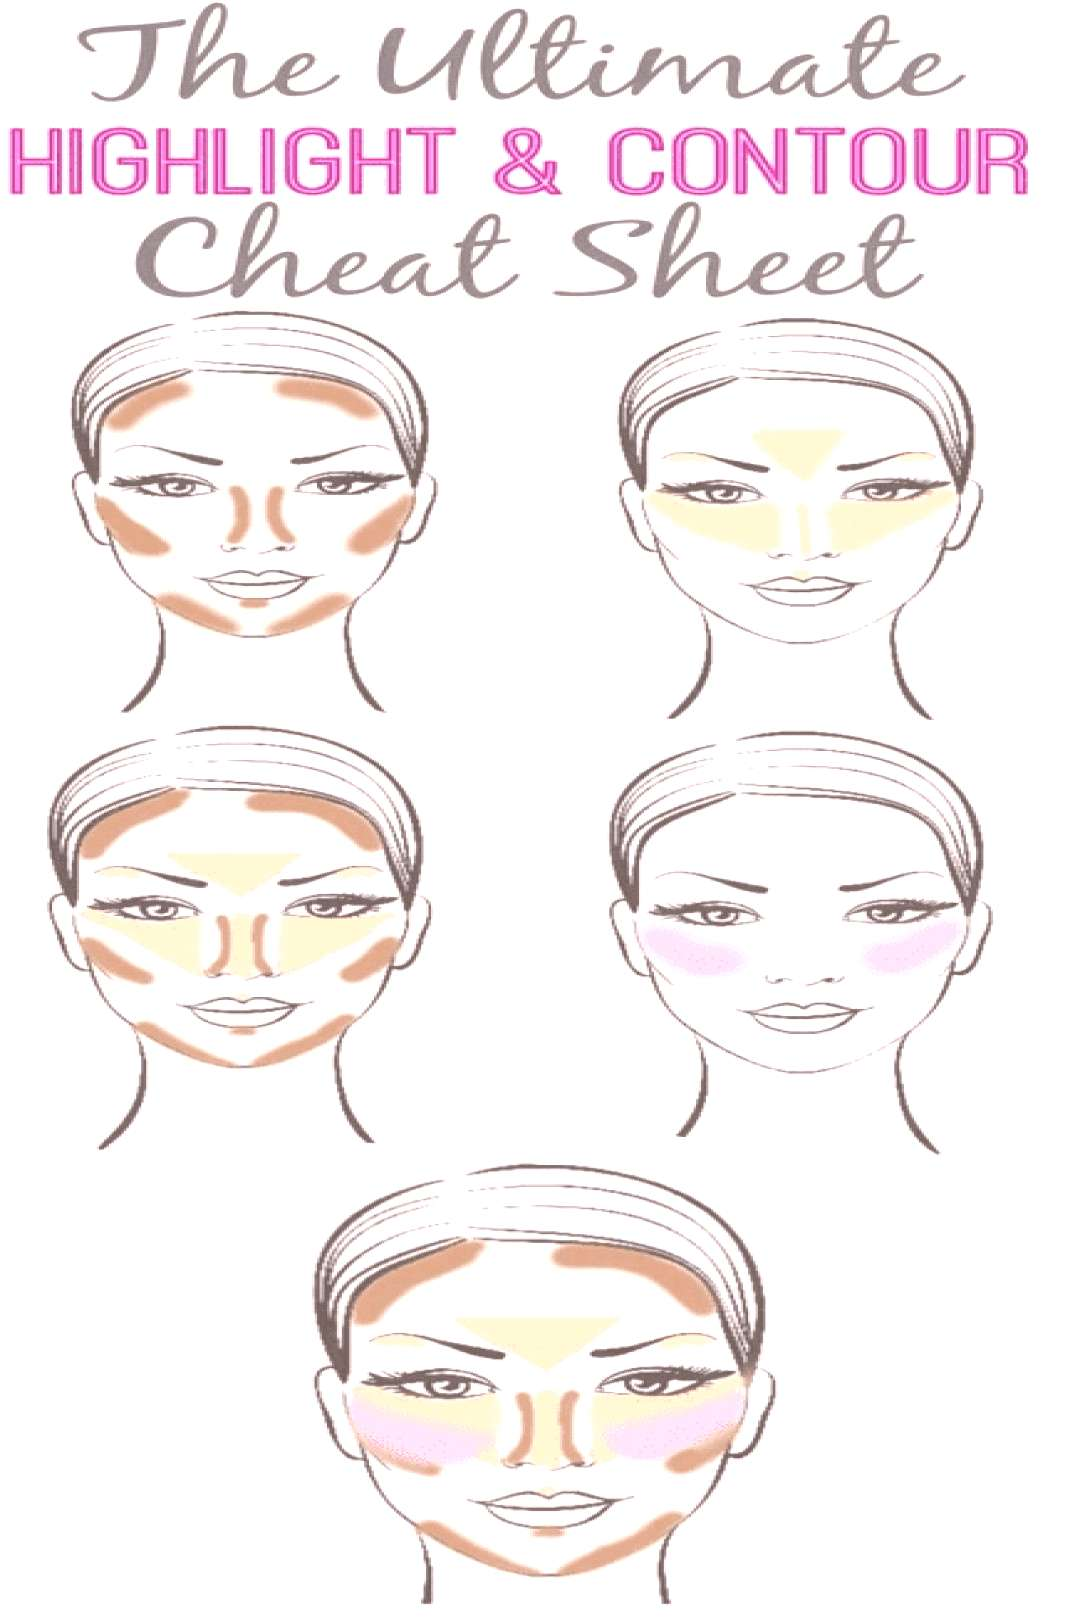 An Easy 5 Step Guide To Contouring Like A Pro - Career Girl Daily